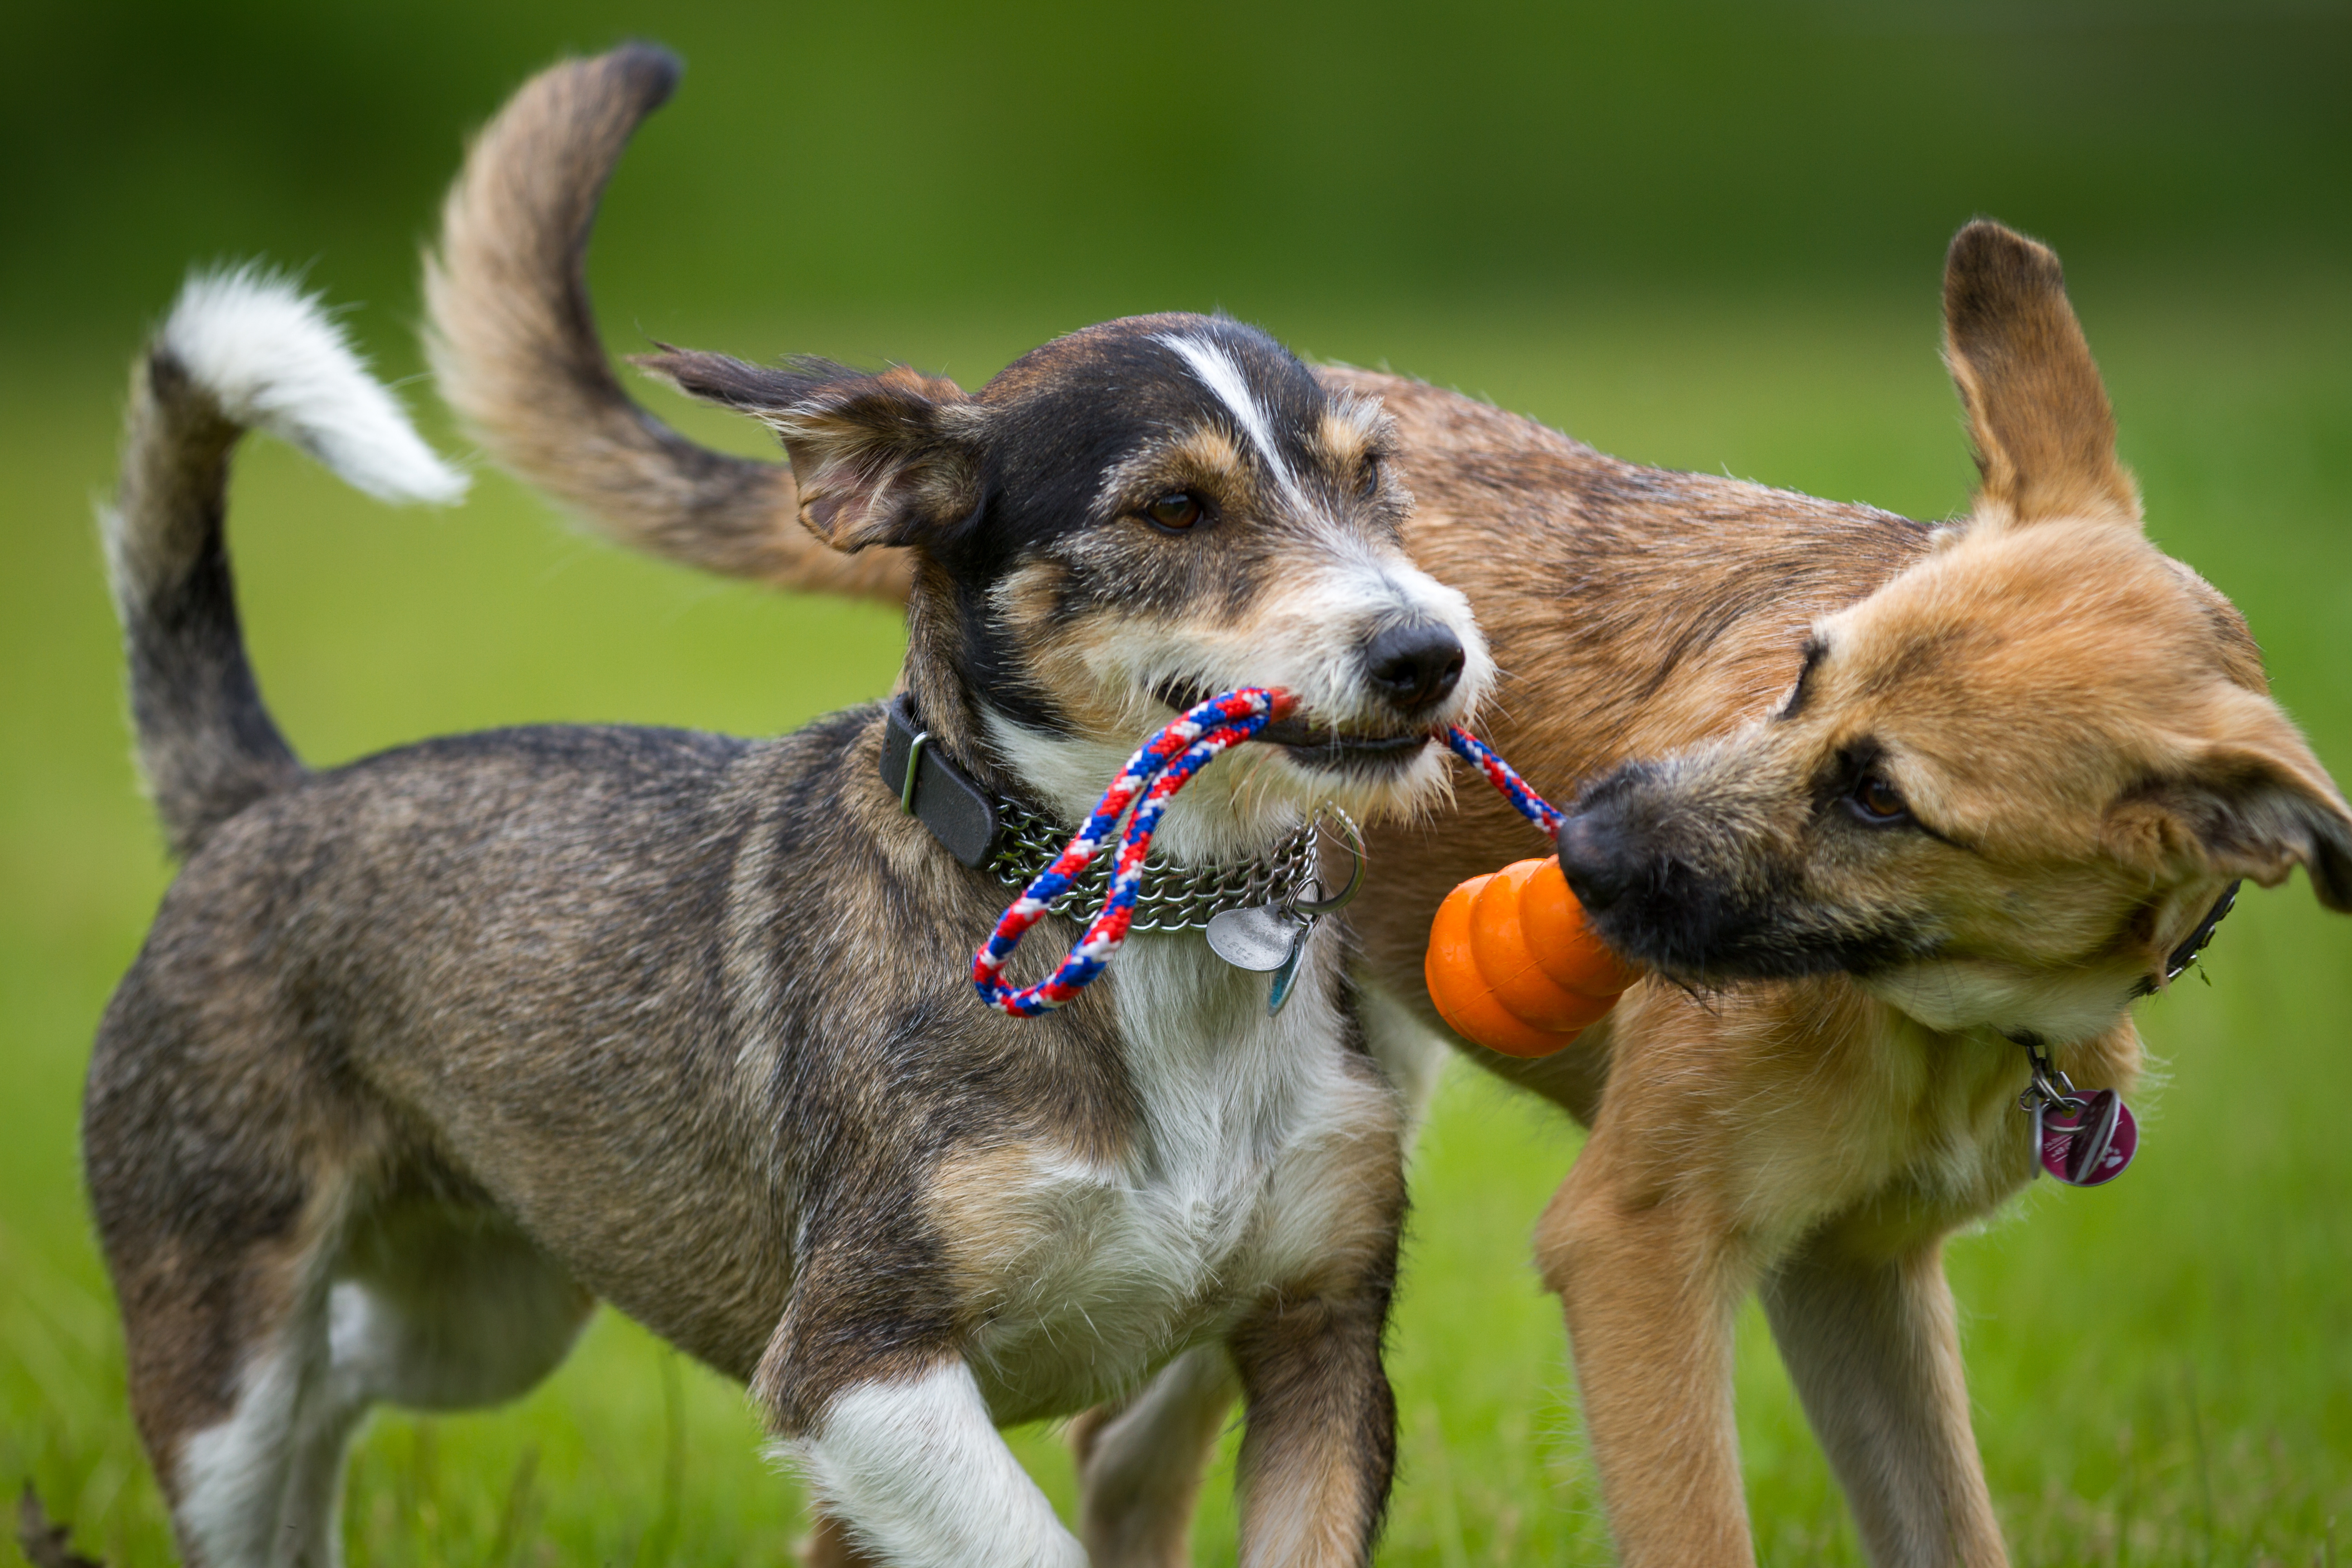 good doggie daycare in baltimore - Woofs and wags